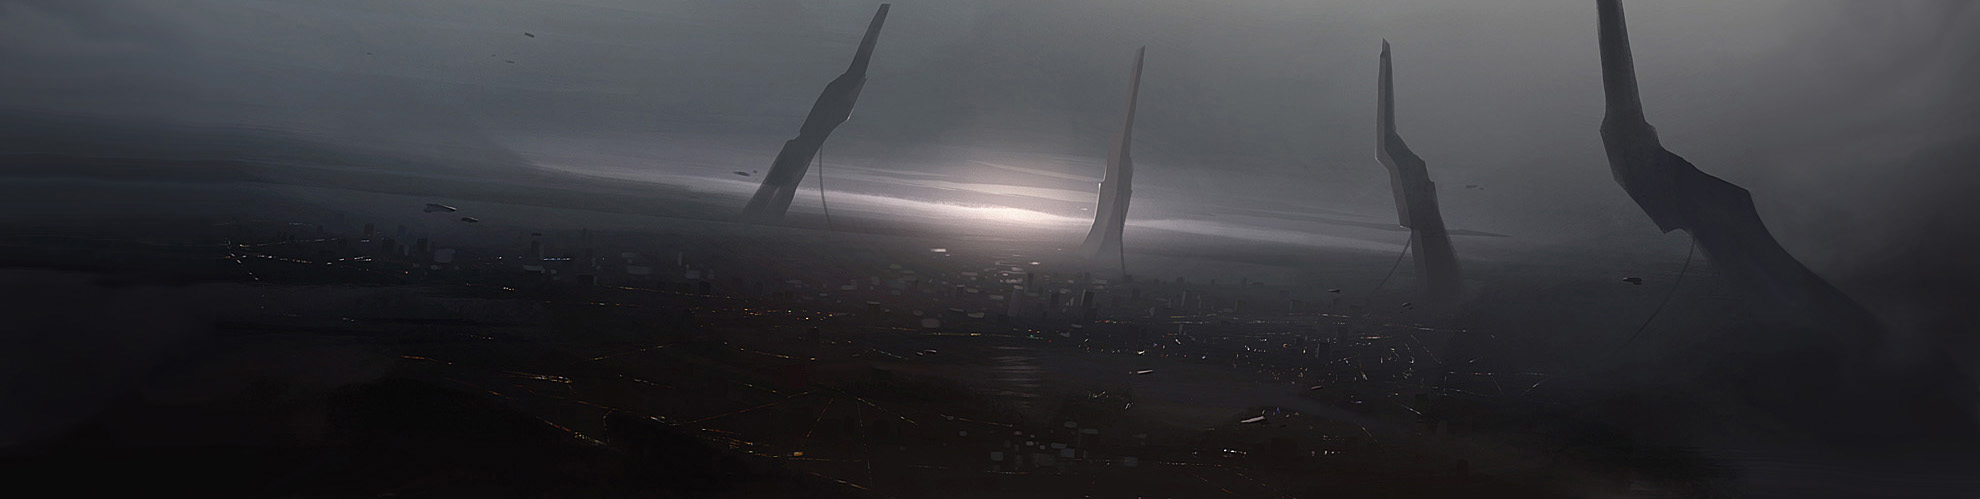 GOATi Outsourcing Environmental Concept Art Image